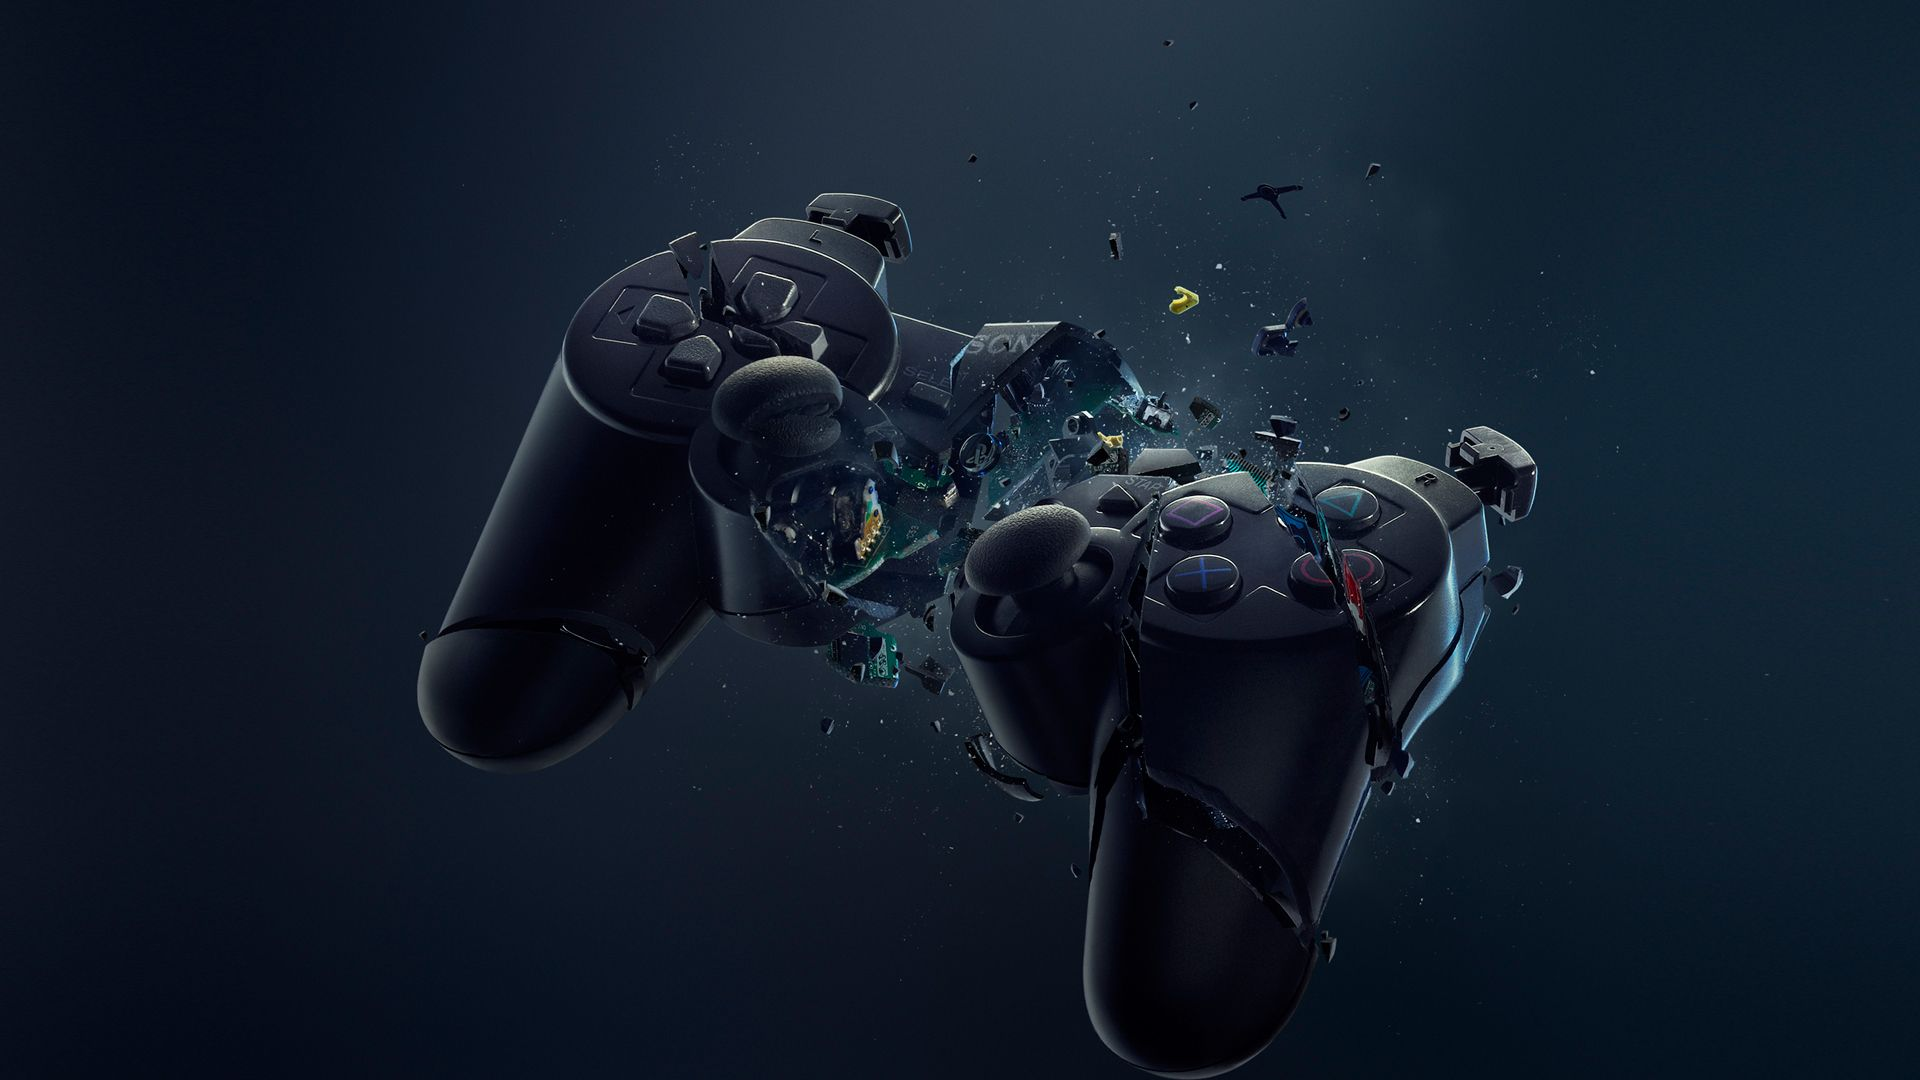 Playstation Game Controller Black Wallpaper Hd Free Desktop Mobile